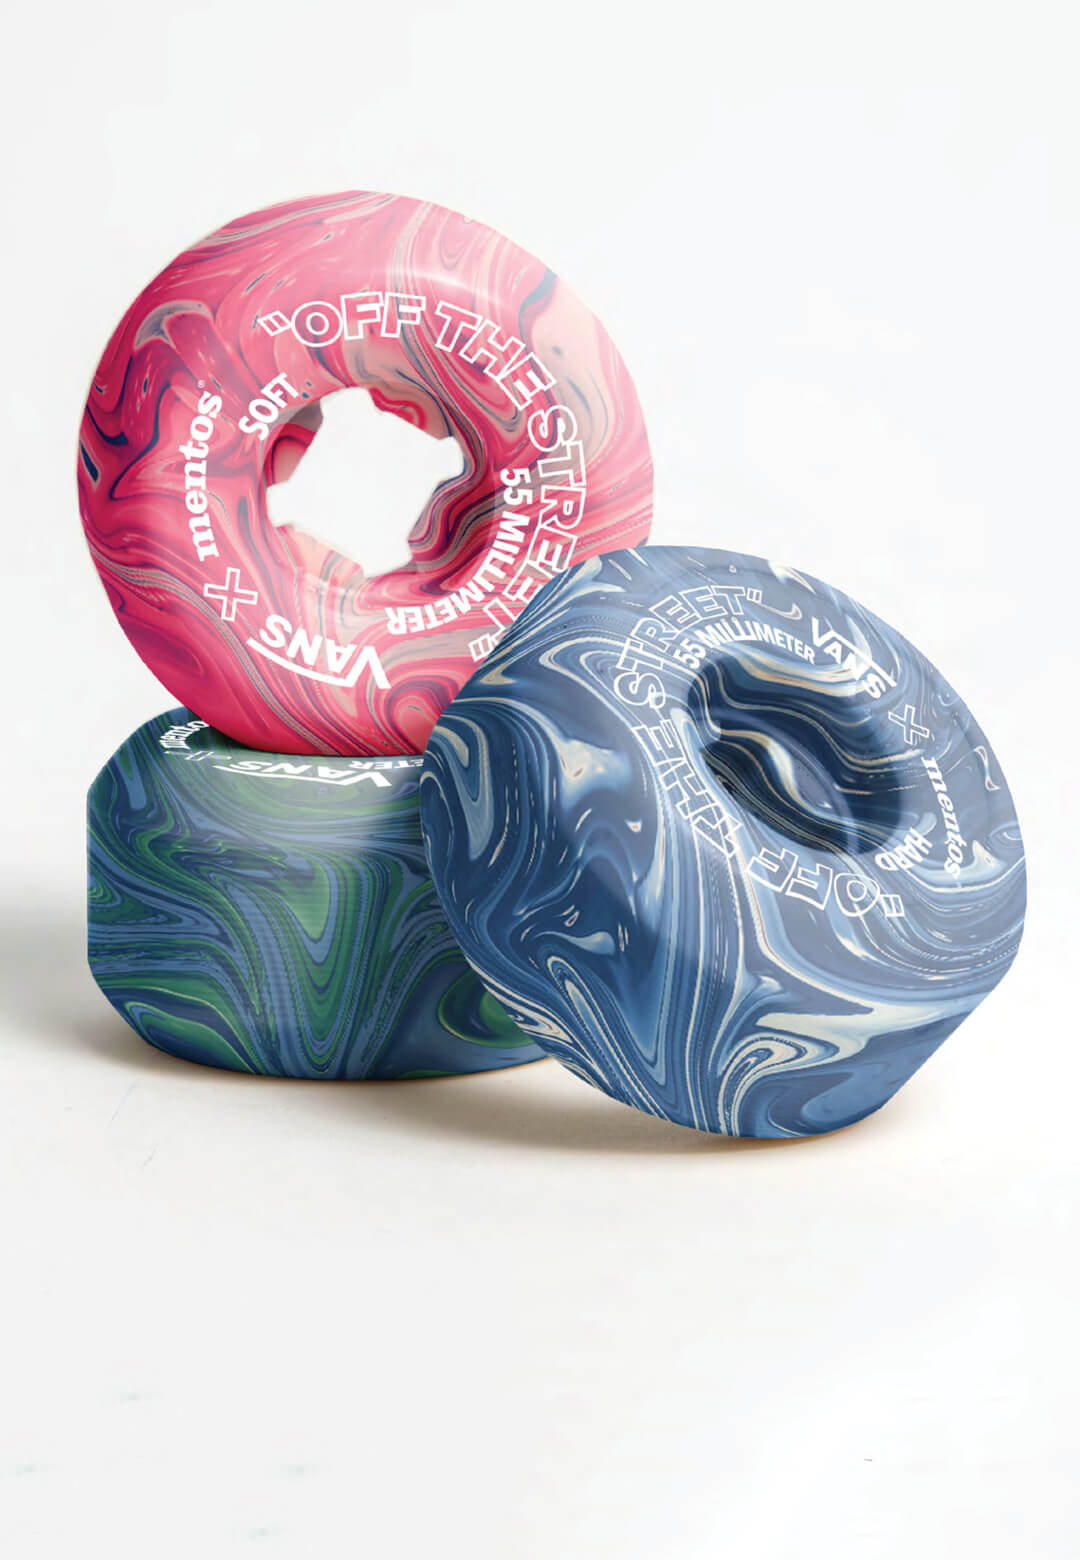 Hugo Maupetit and Vivian Fischer from L'Ecole de design Nantes Atlantique have devised a method to recycle discarded chewing gum into skateboard wheels | Vans x Mentos by Hugo Maupetit and Vivian Fischer | STIRworld